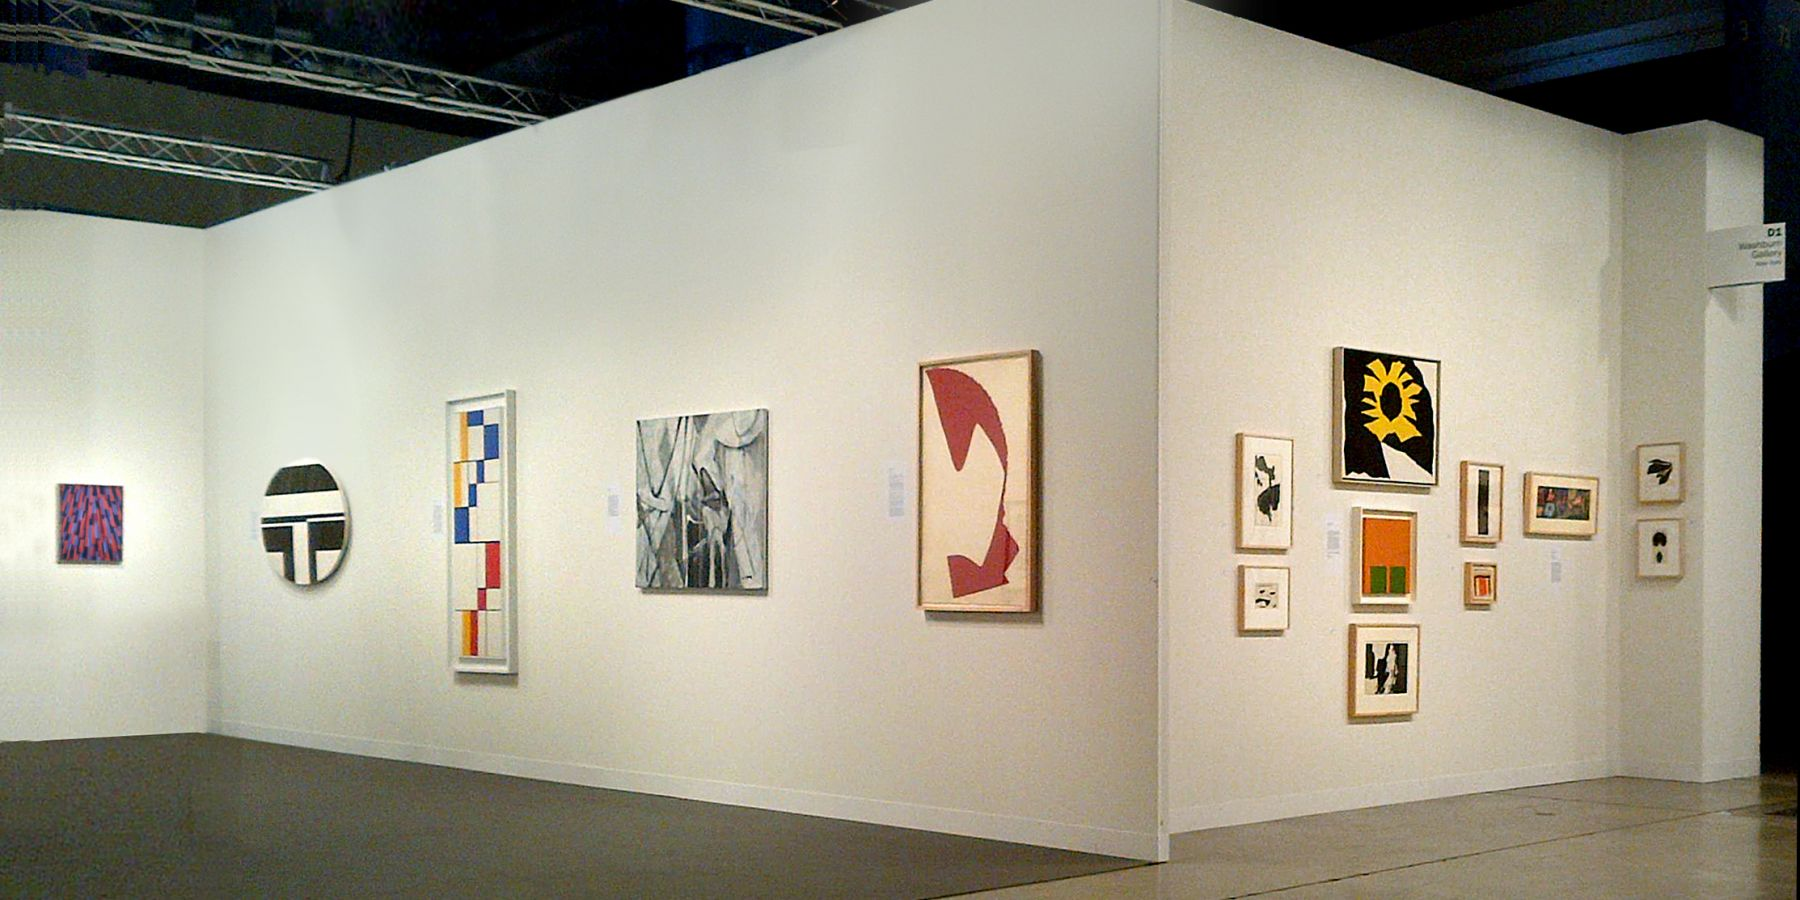 "(from left) Myron Stout, Untitled, c. 1950, oil on canvasboard, 20 x 16 in., Ilya Bolotowsky, ""Black and White Ellipse, 1963, oil on canvas, 30 x 40 in., Leon Polk Smith, ""Diagonal Passage: Red-Blue-Yellow,"" 1949, oil on canvas, 54 x 20 in., Nicolas Carone, ""Off the Chart,"" 2009, acrylic on tarpaulin, 33 x 42 in., Leon Polk Smith, Untitled, 1964, torn paper drawing, 39 x 25 in., (right wall) Small works by Nicolas Carone, Reuben Kadish, Alice Trumbull Mason, Doug Ohlson, Ray Parker, Leon Polk Smith, Richard Stankieiwcz, and Jack Youngerman"